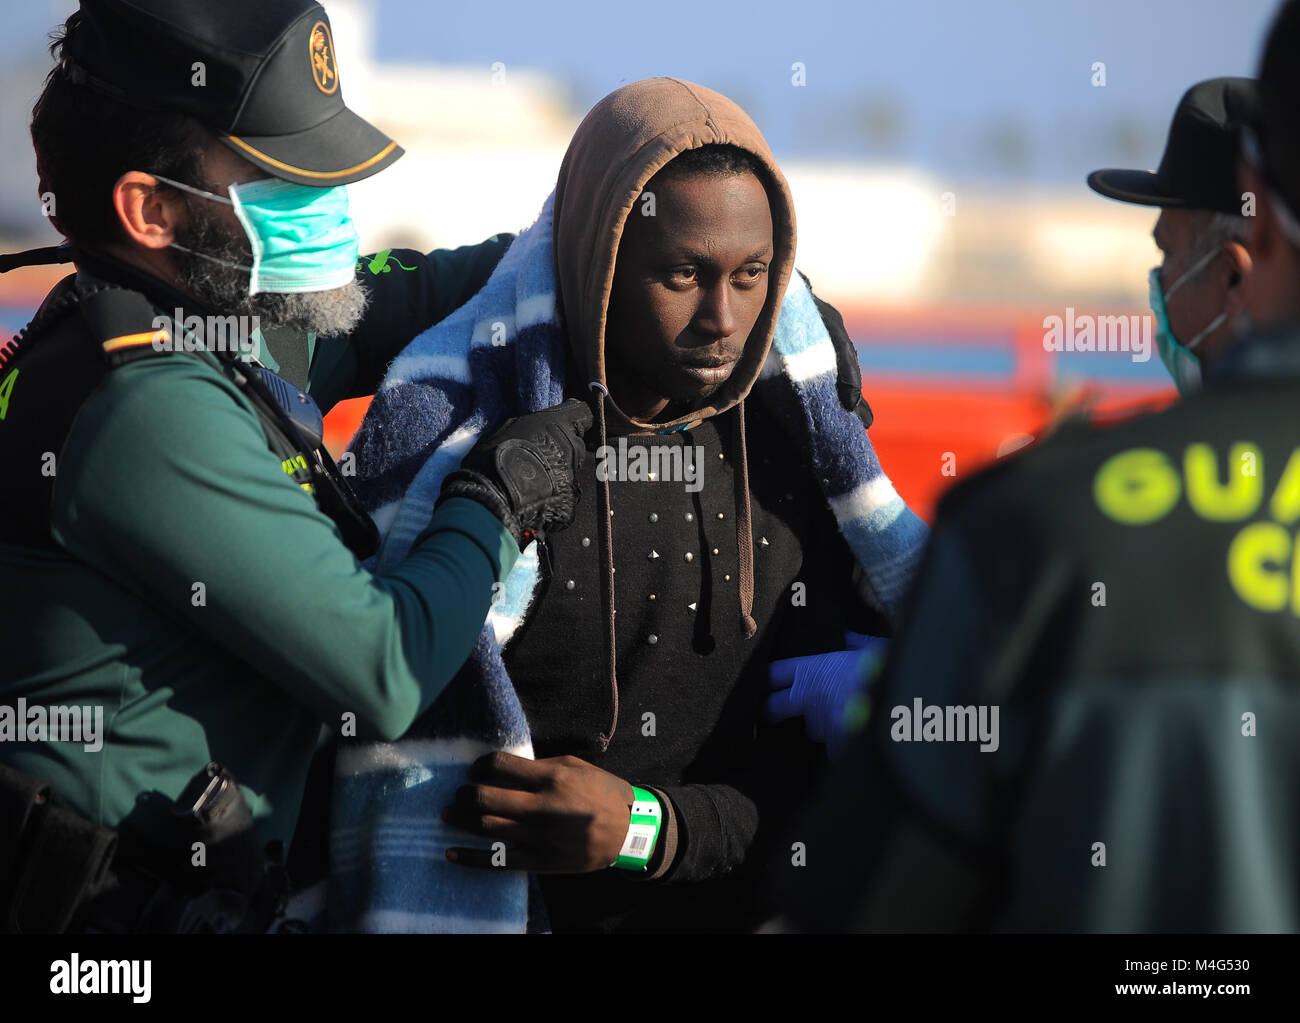 Malaga, Malaga, Spain. 16th Feb, 2018. A migrant is being led by member of Civil Guard. Arrival of a group of migrants Stock Photo